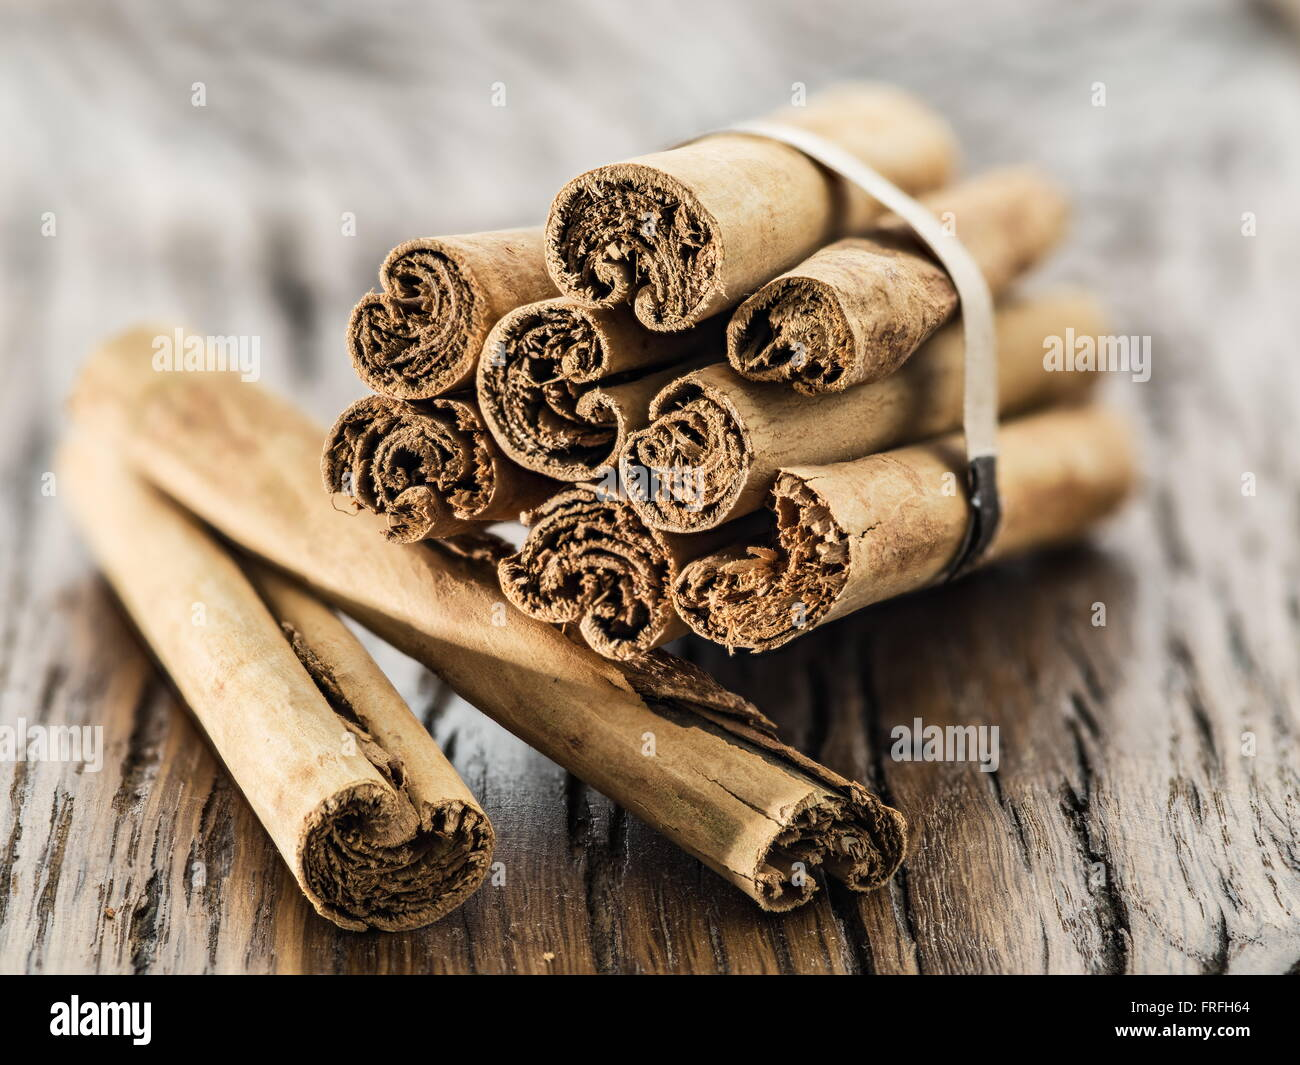 Cinnamon sticks on the wooden table. Close up. - Stock Image